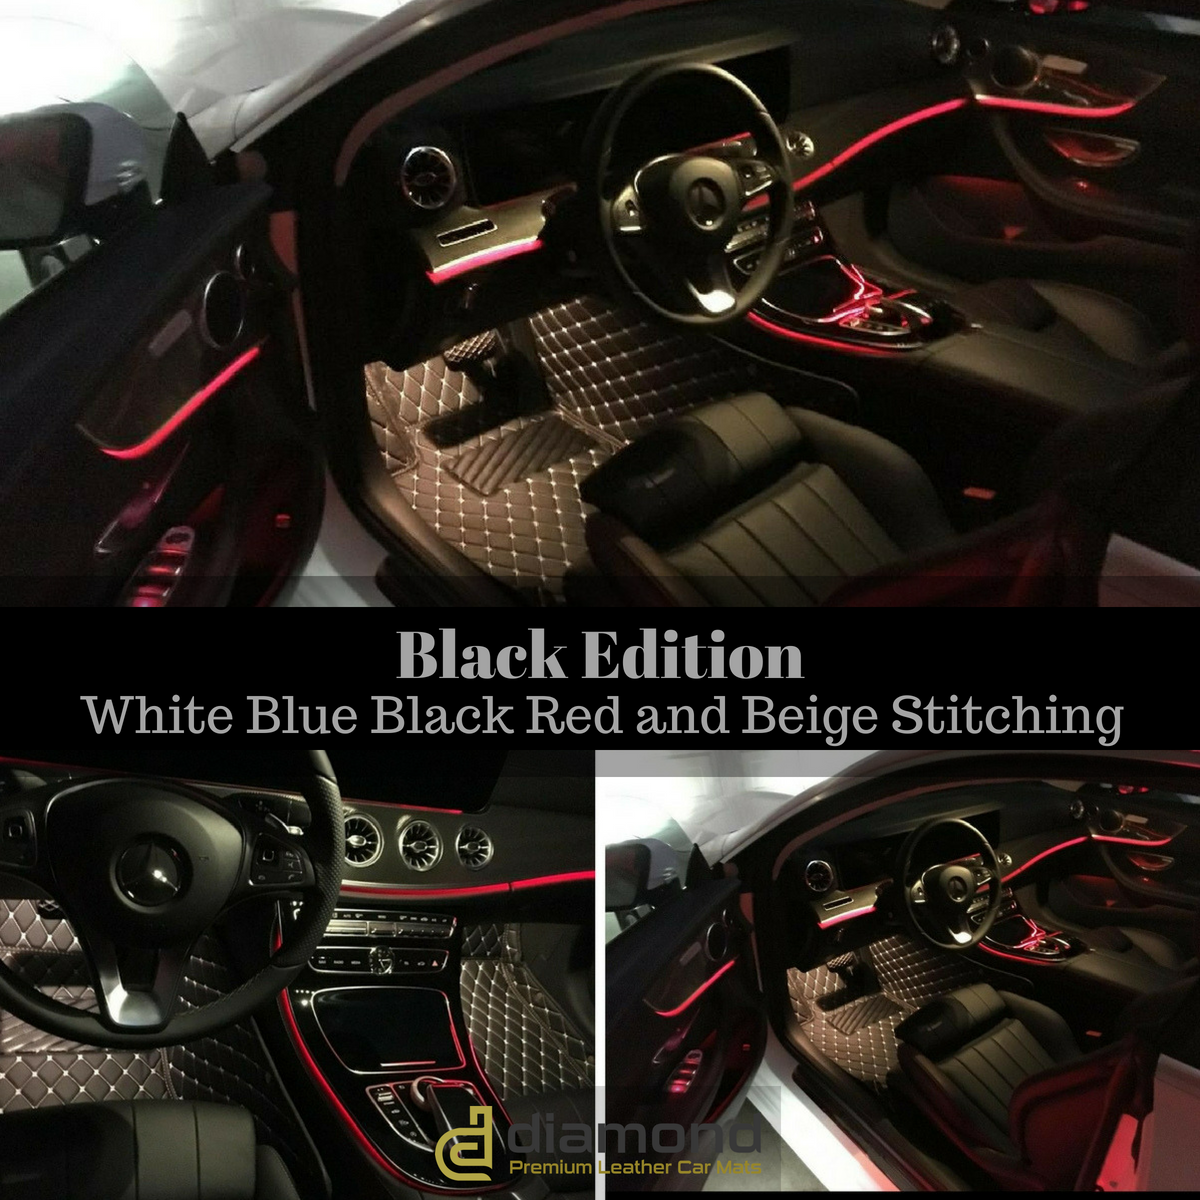 Jialuode Custom All Weather Car Floor Mats,Diamond Mats with Logo,Leather Liner Mats,Luxury Carpet Mats,Full Set Protection for Coupe Sport Sedan Convertible Van SUV Black